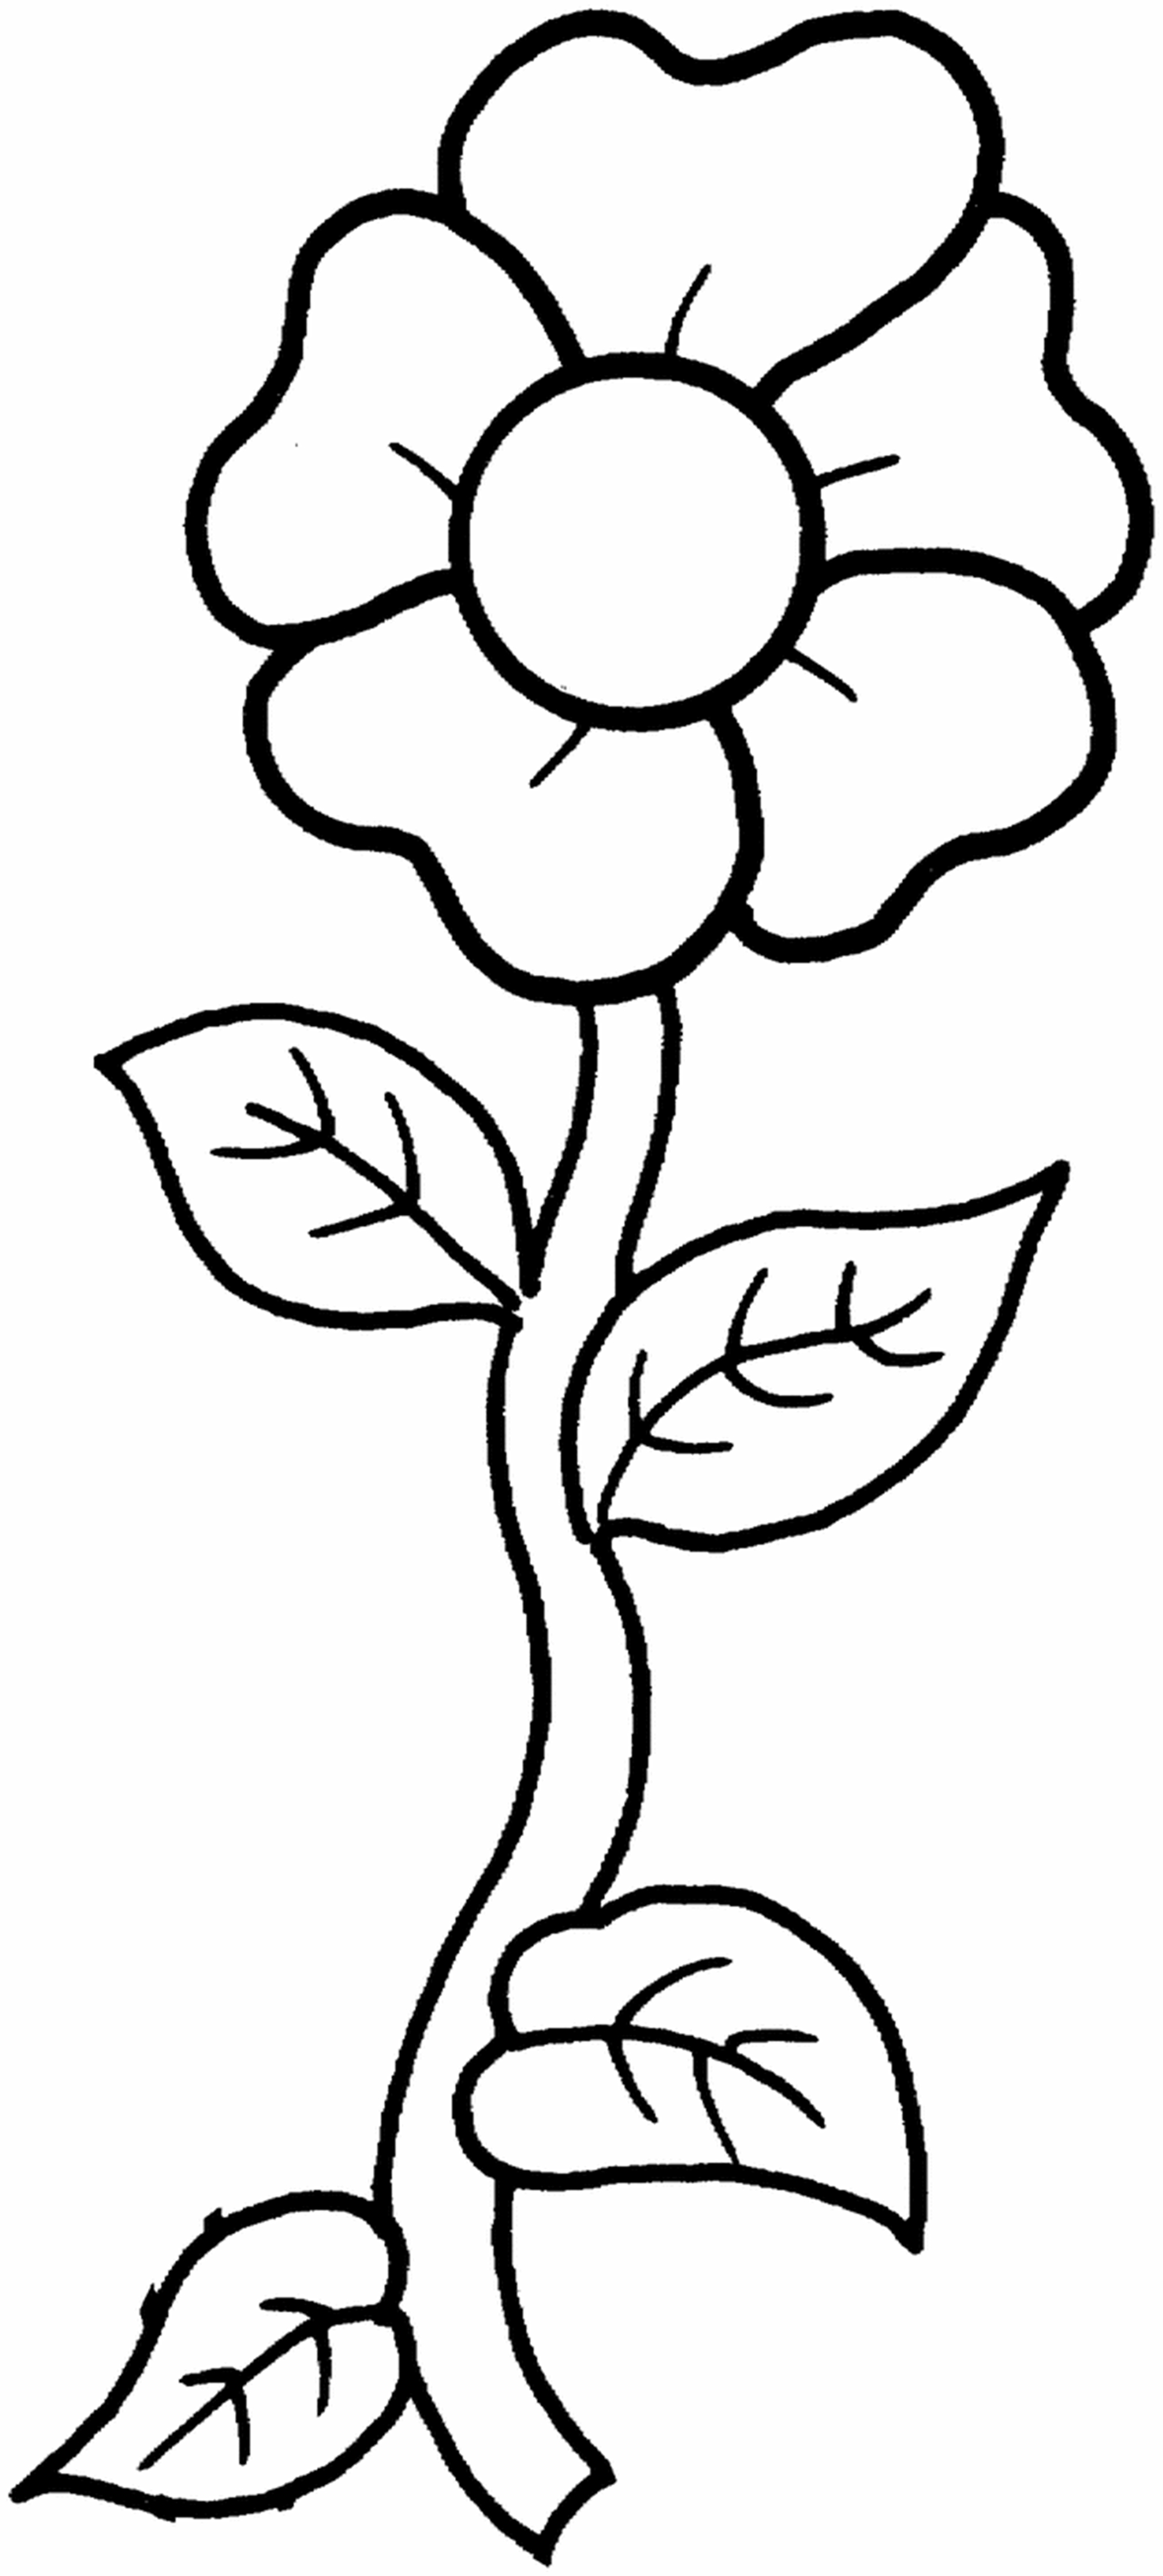 free printable flower free printable flower coloring pages for kids best free flower printable